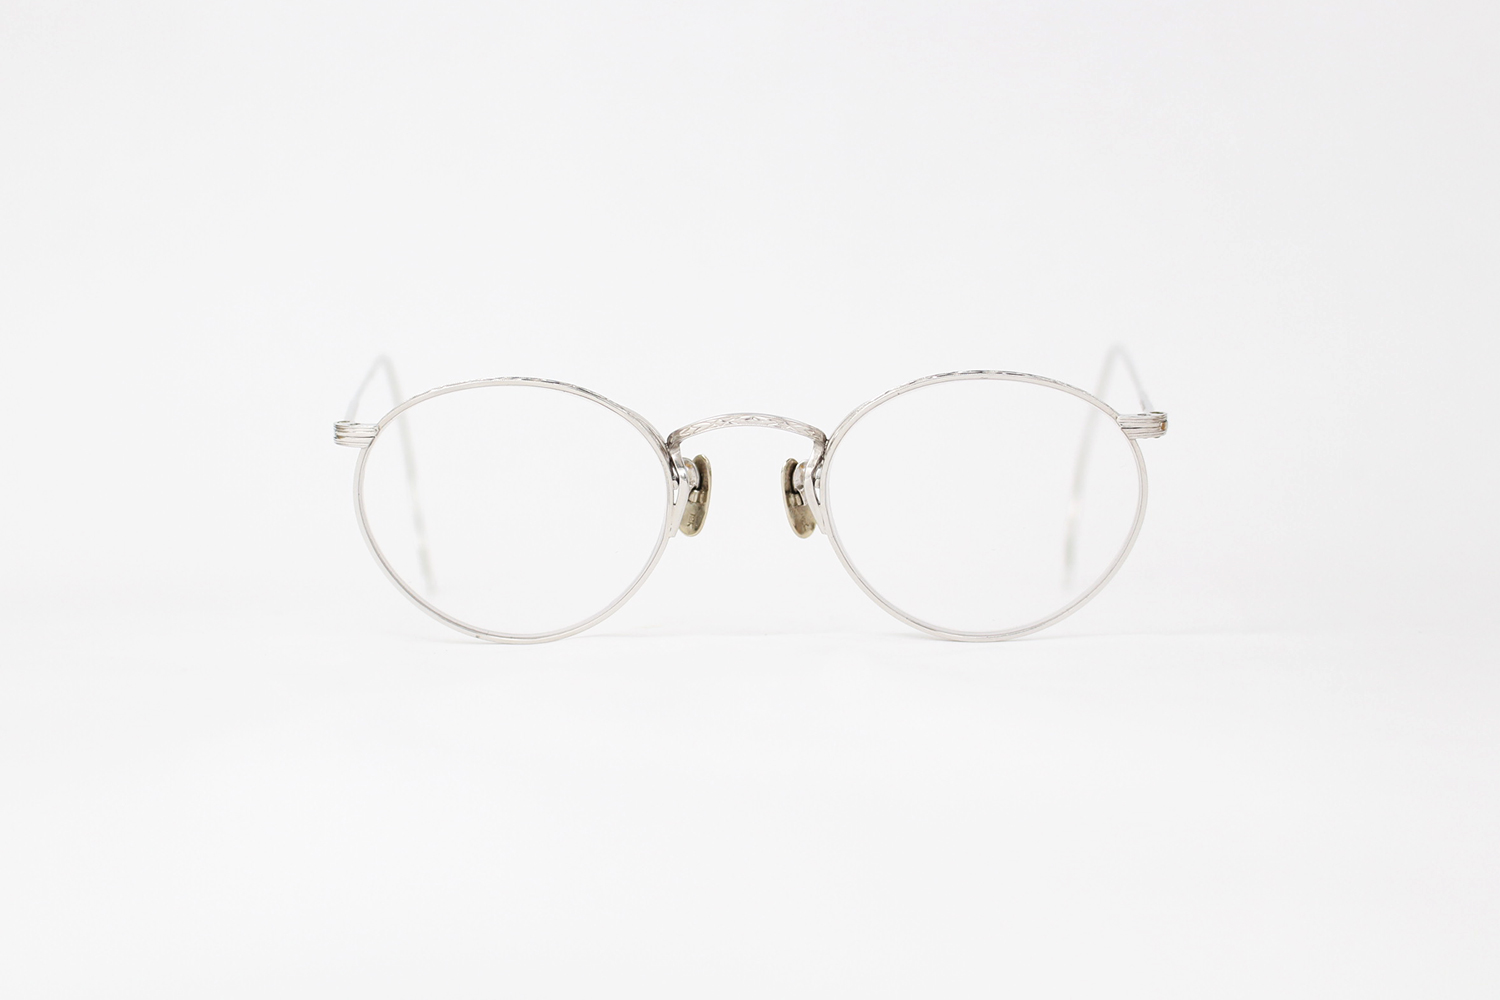 TS_Artcraft_Optical_Company_The-Artbilt_1_10-12K_Gold-Filled_with_solid_Gold_Nose_Pads_1